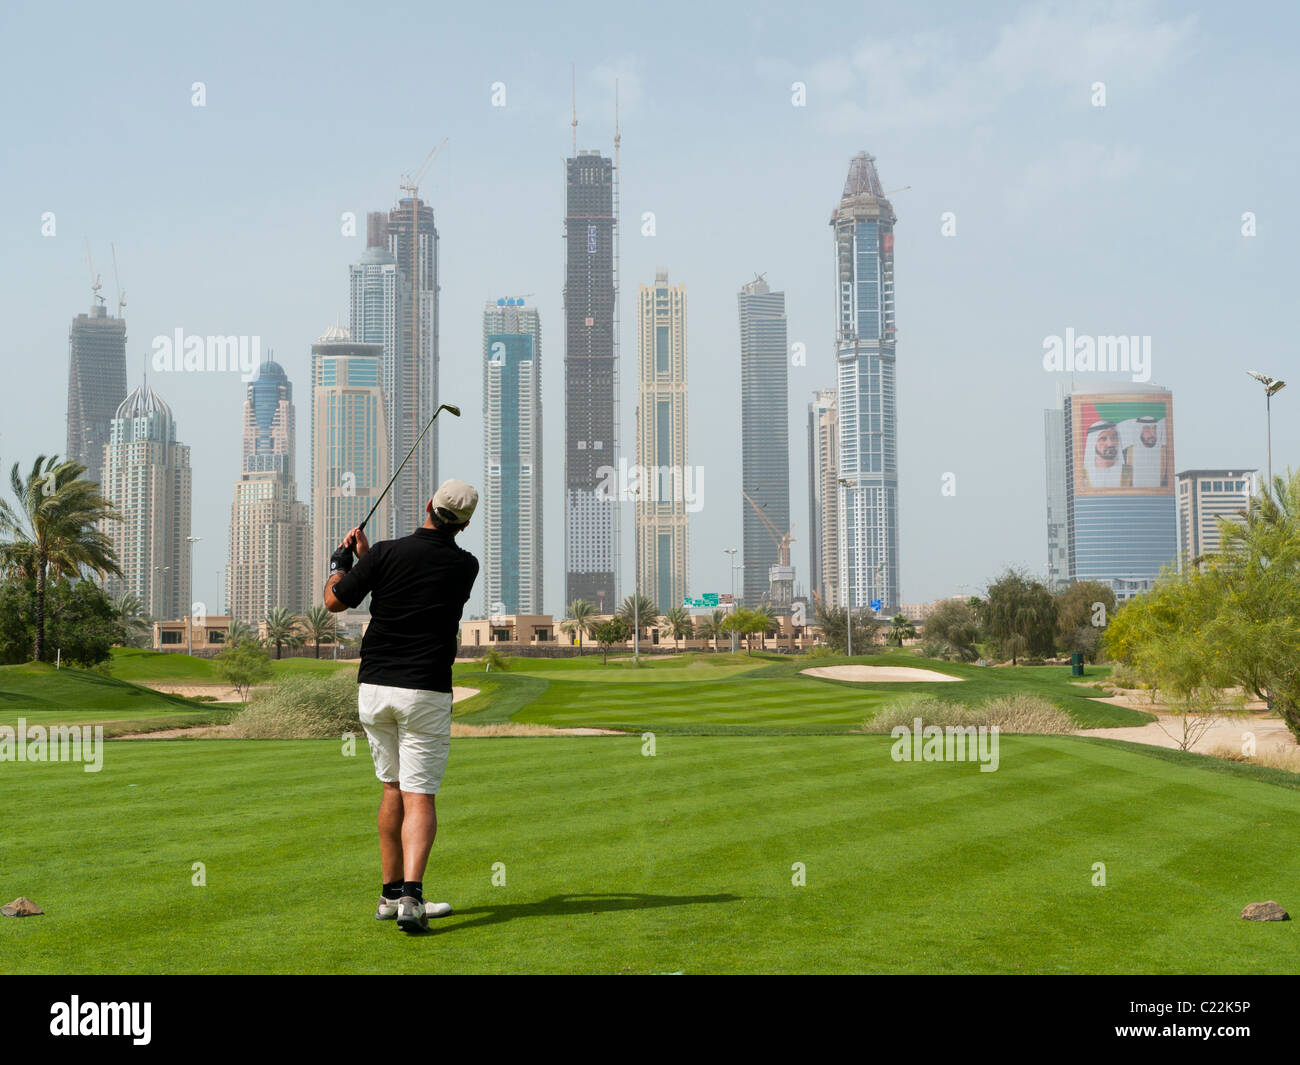 A man playing golf at Emirates Golf Club in Dubai in the UAE - Stock Image